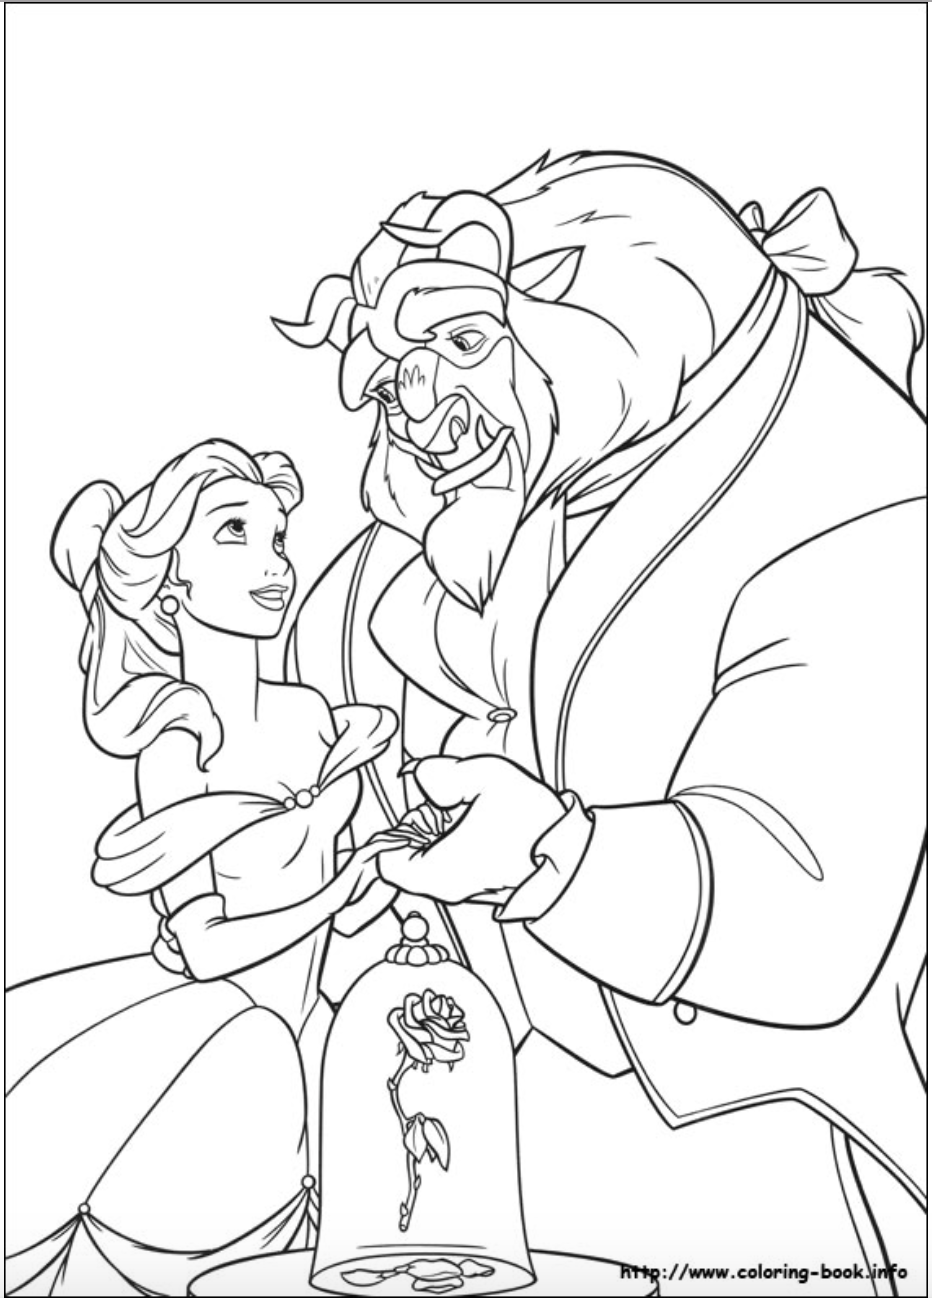 Beauty and the Beast- Belle and the Beast coloring page | Beauty and ...